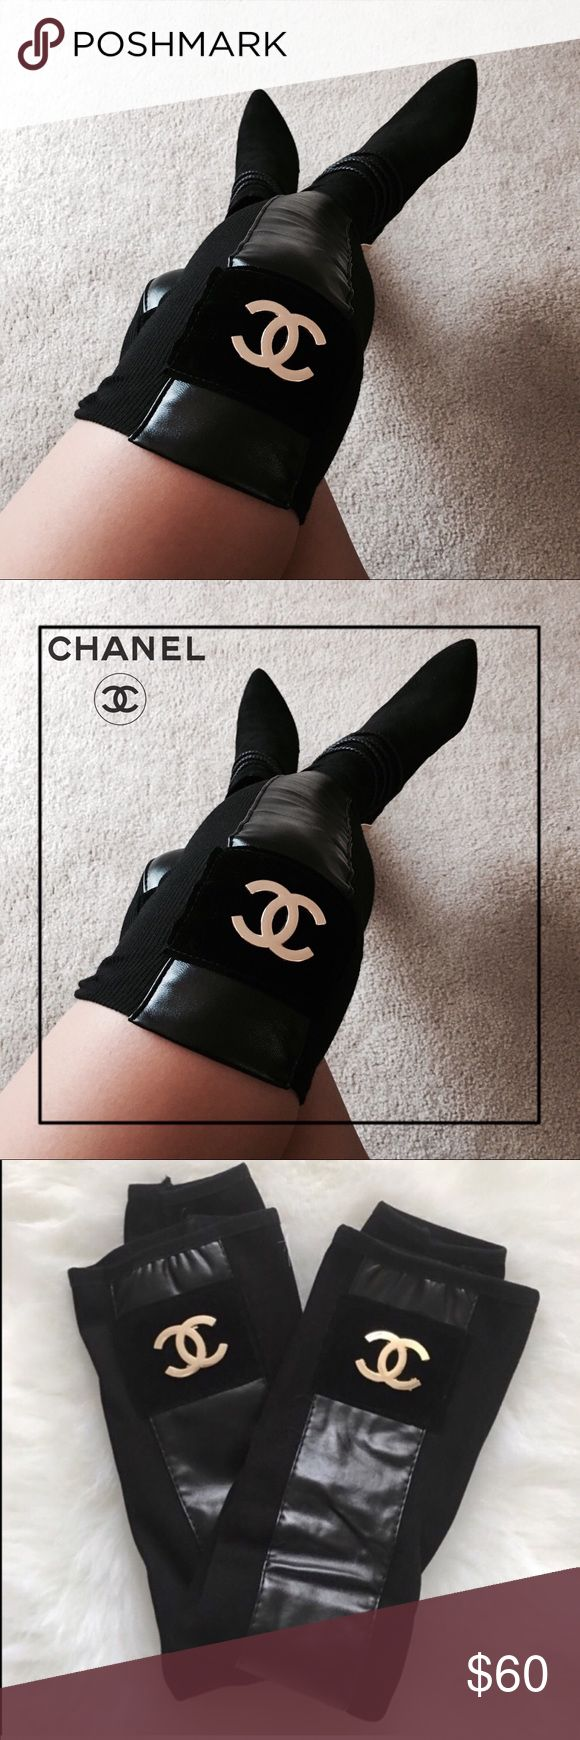 """‼️SALE‼️⚜️CHANEL® Luxury OverTheKnee LegWarmers ⚜️ ⚜️CHANEL® Luxury Over The Knee Leg Warmers ⚜️   CHANEL Brand New Luxury """"Over the Knee"""" Bootie Legwarmers   Knit Stretch Material, PU leather and gold metallic logo C     One Size l (Price Reflects, Not Auth) CHANEL Shoes Over the Knee Boots"""